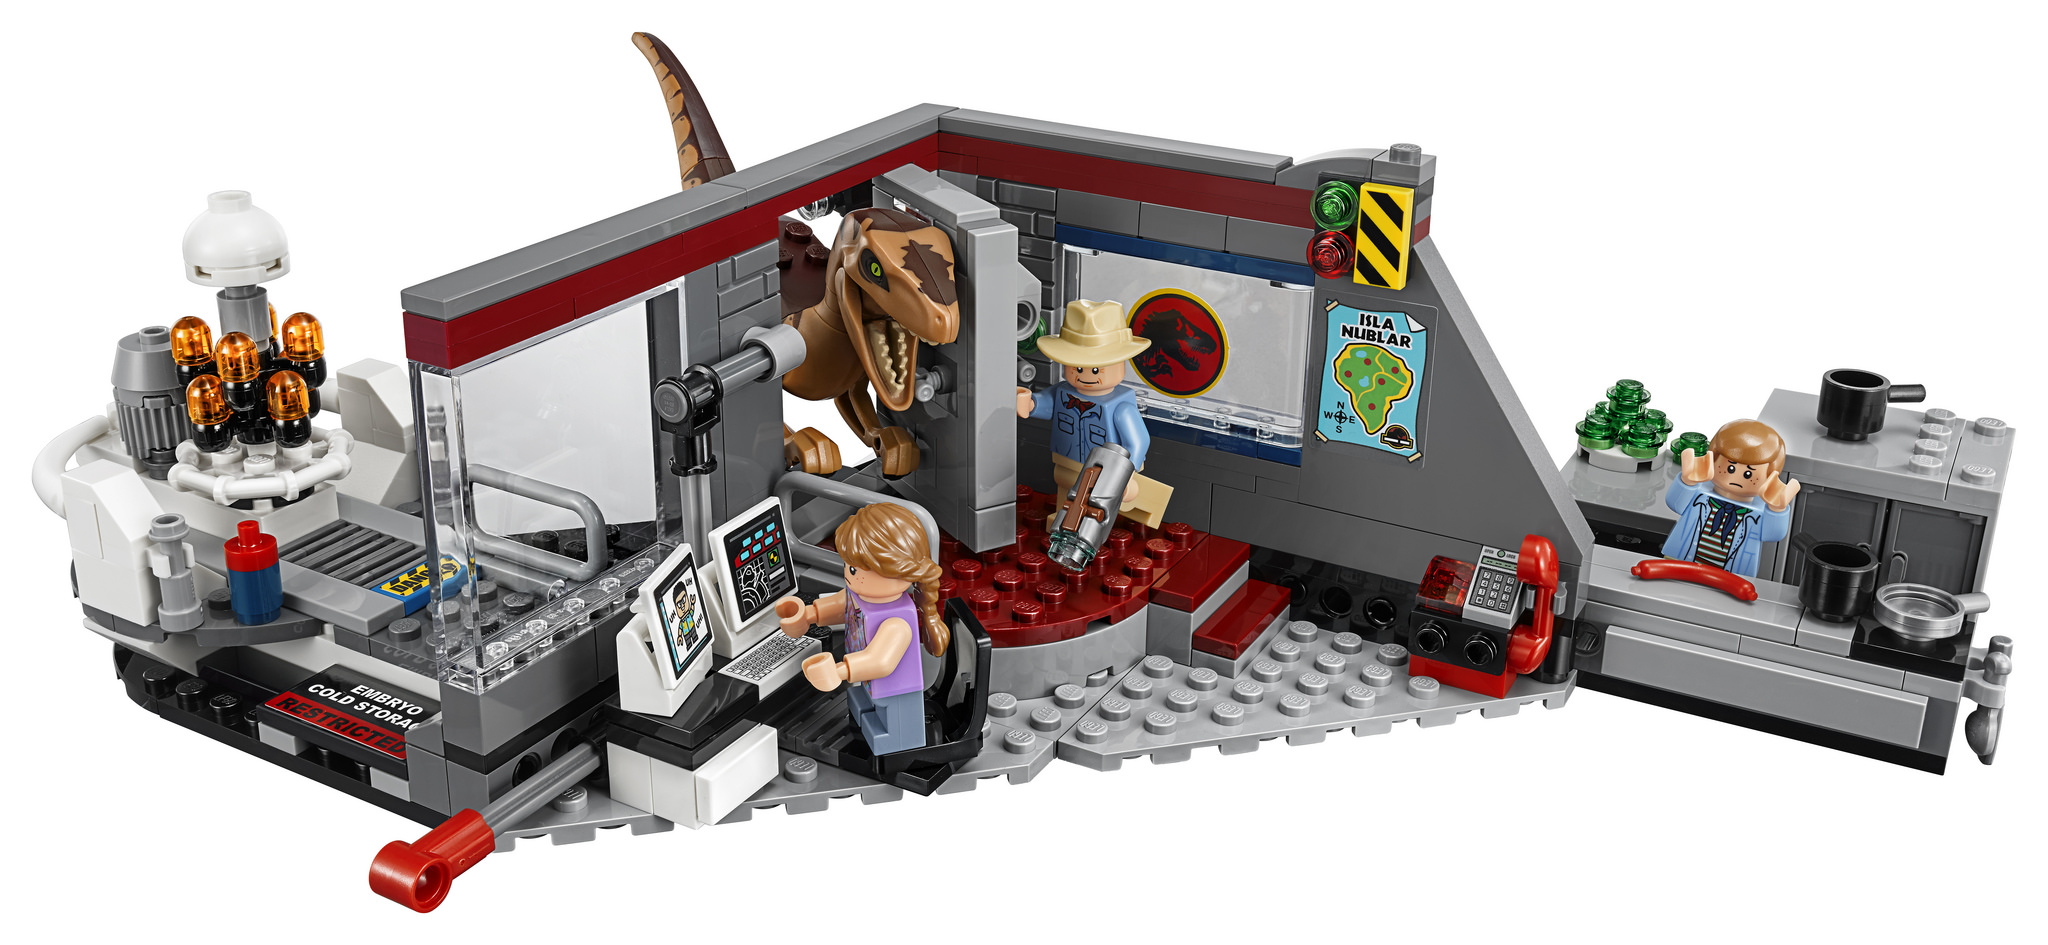 Lego jurassic world klassisches jurassic park set - Jurasic park lego ...